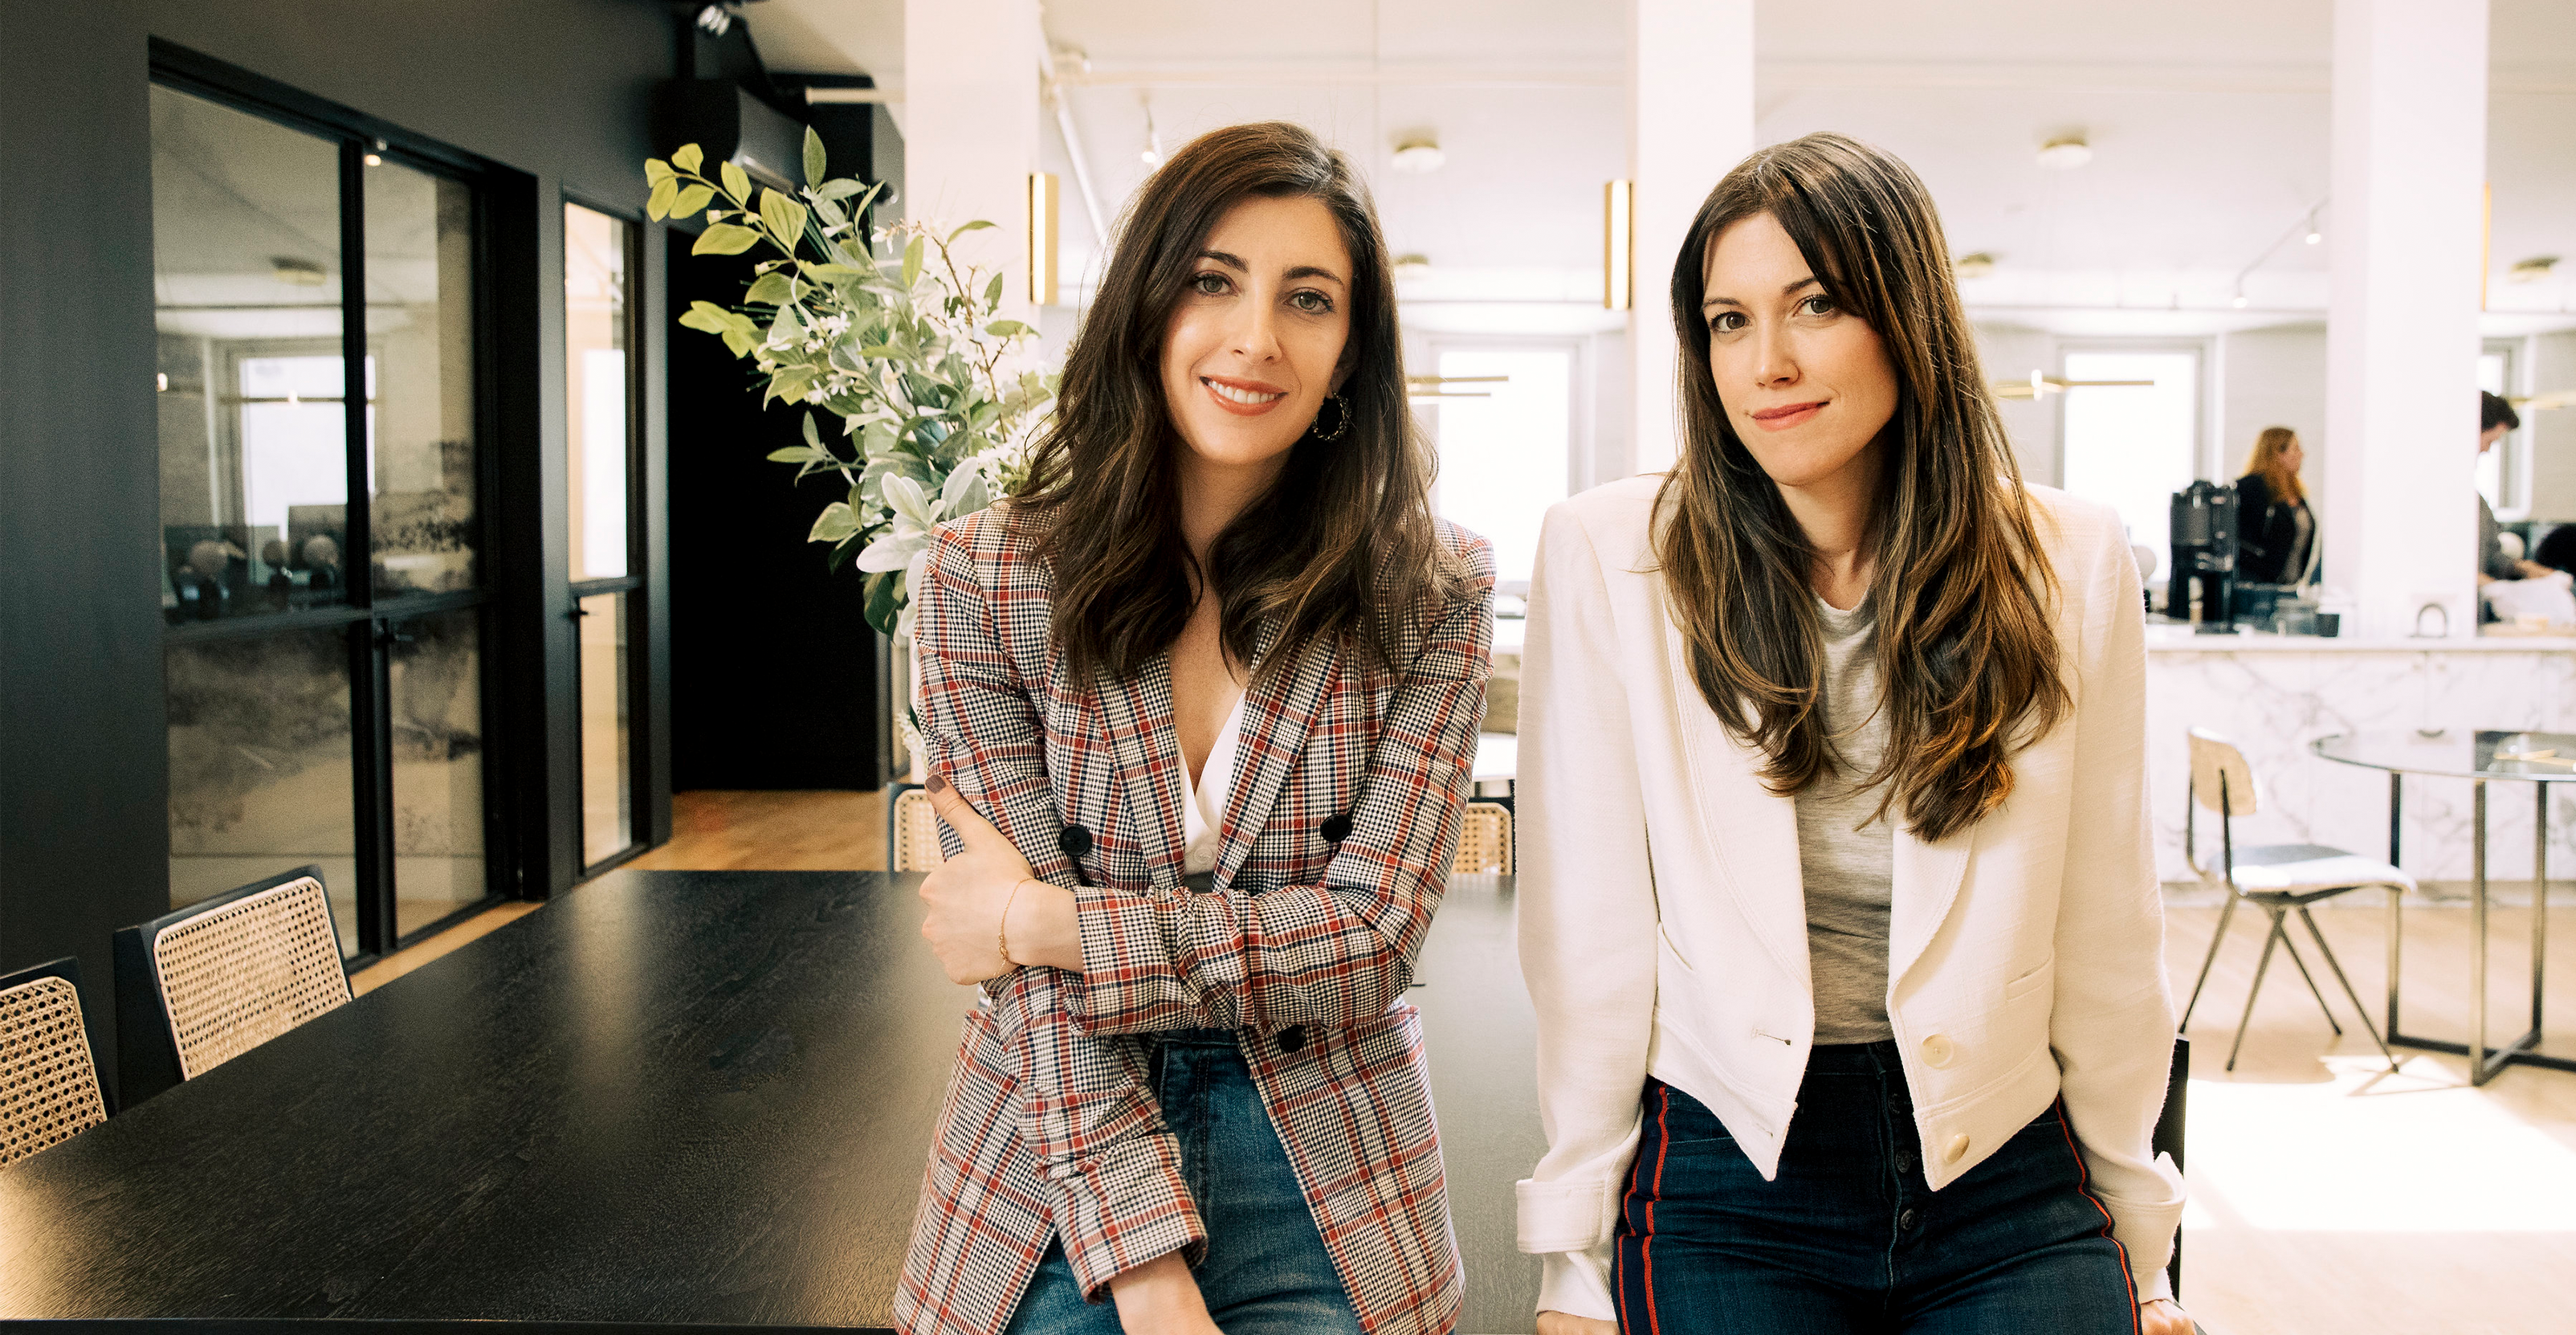 Katya Libin and Amri Kibbler, Co-Founders of Heymama